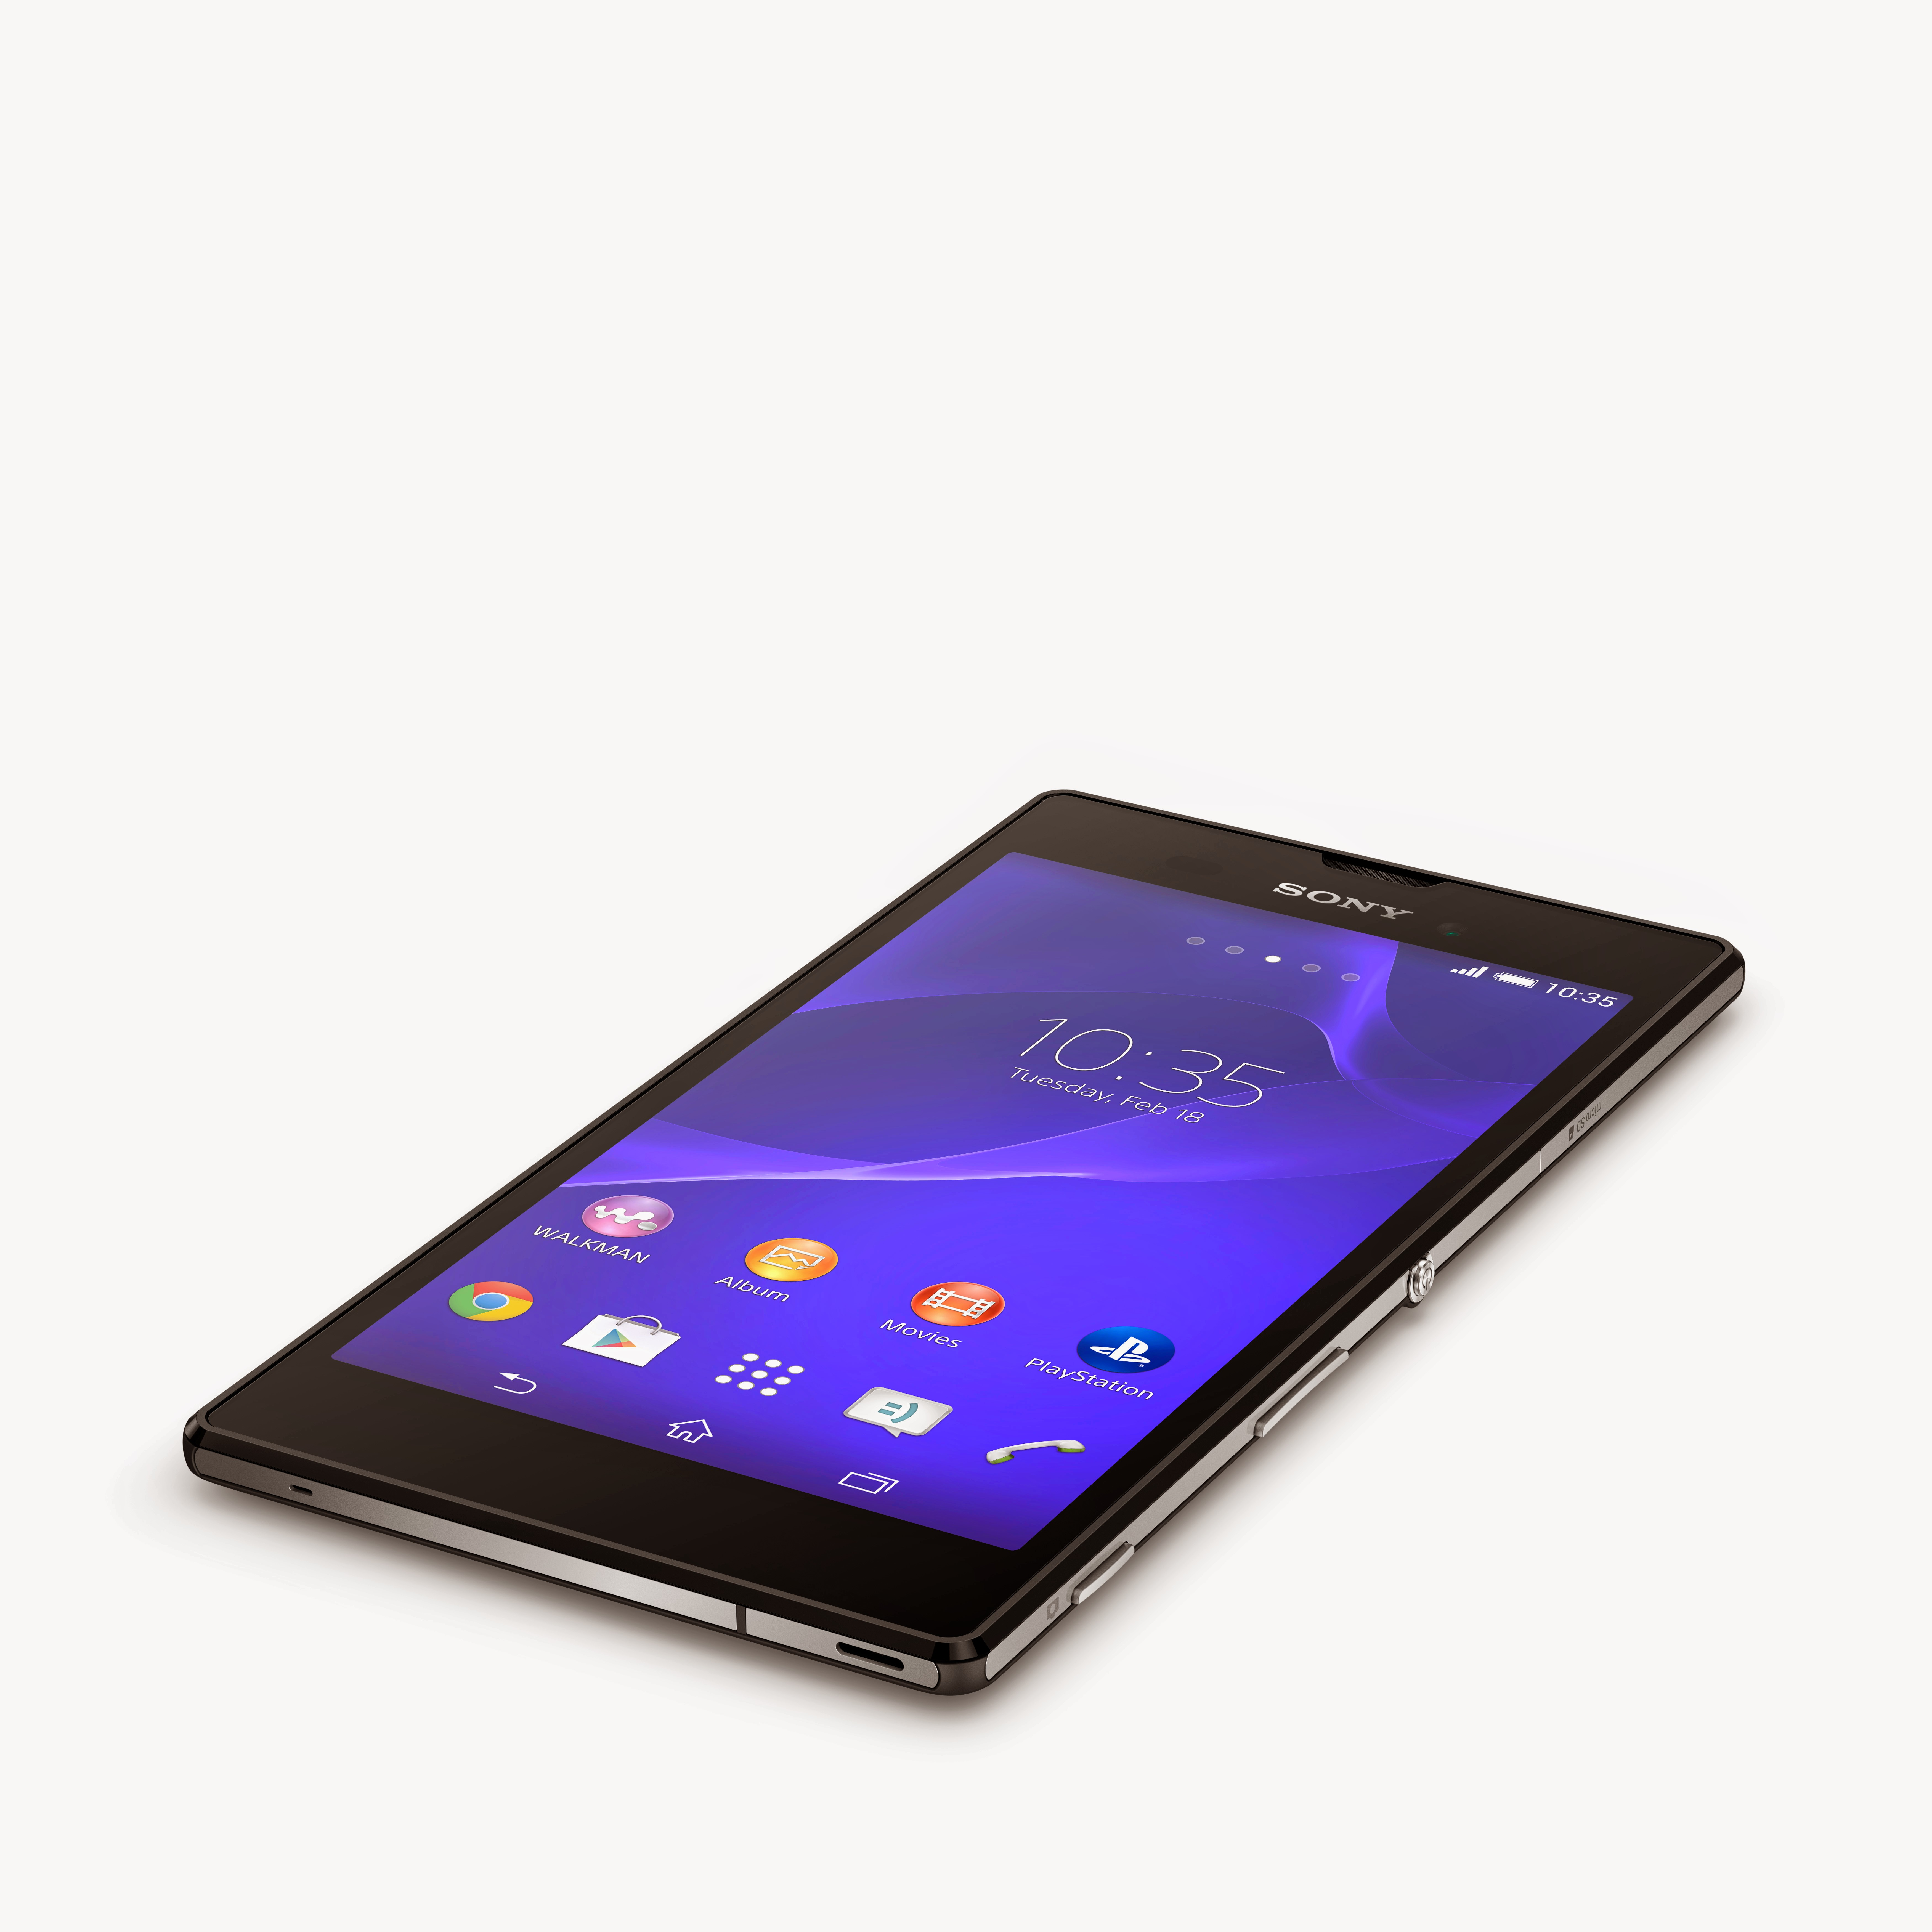 2 Xperia T3 Black Tabletop Sony unveils the Xperia T3, touted as the worlds slimmest 5.3 inch smartphone